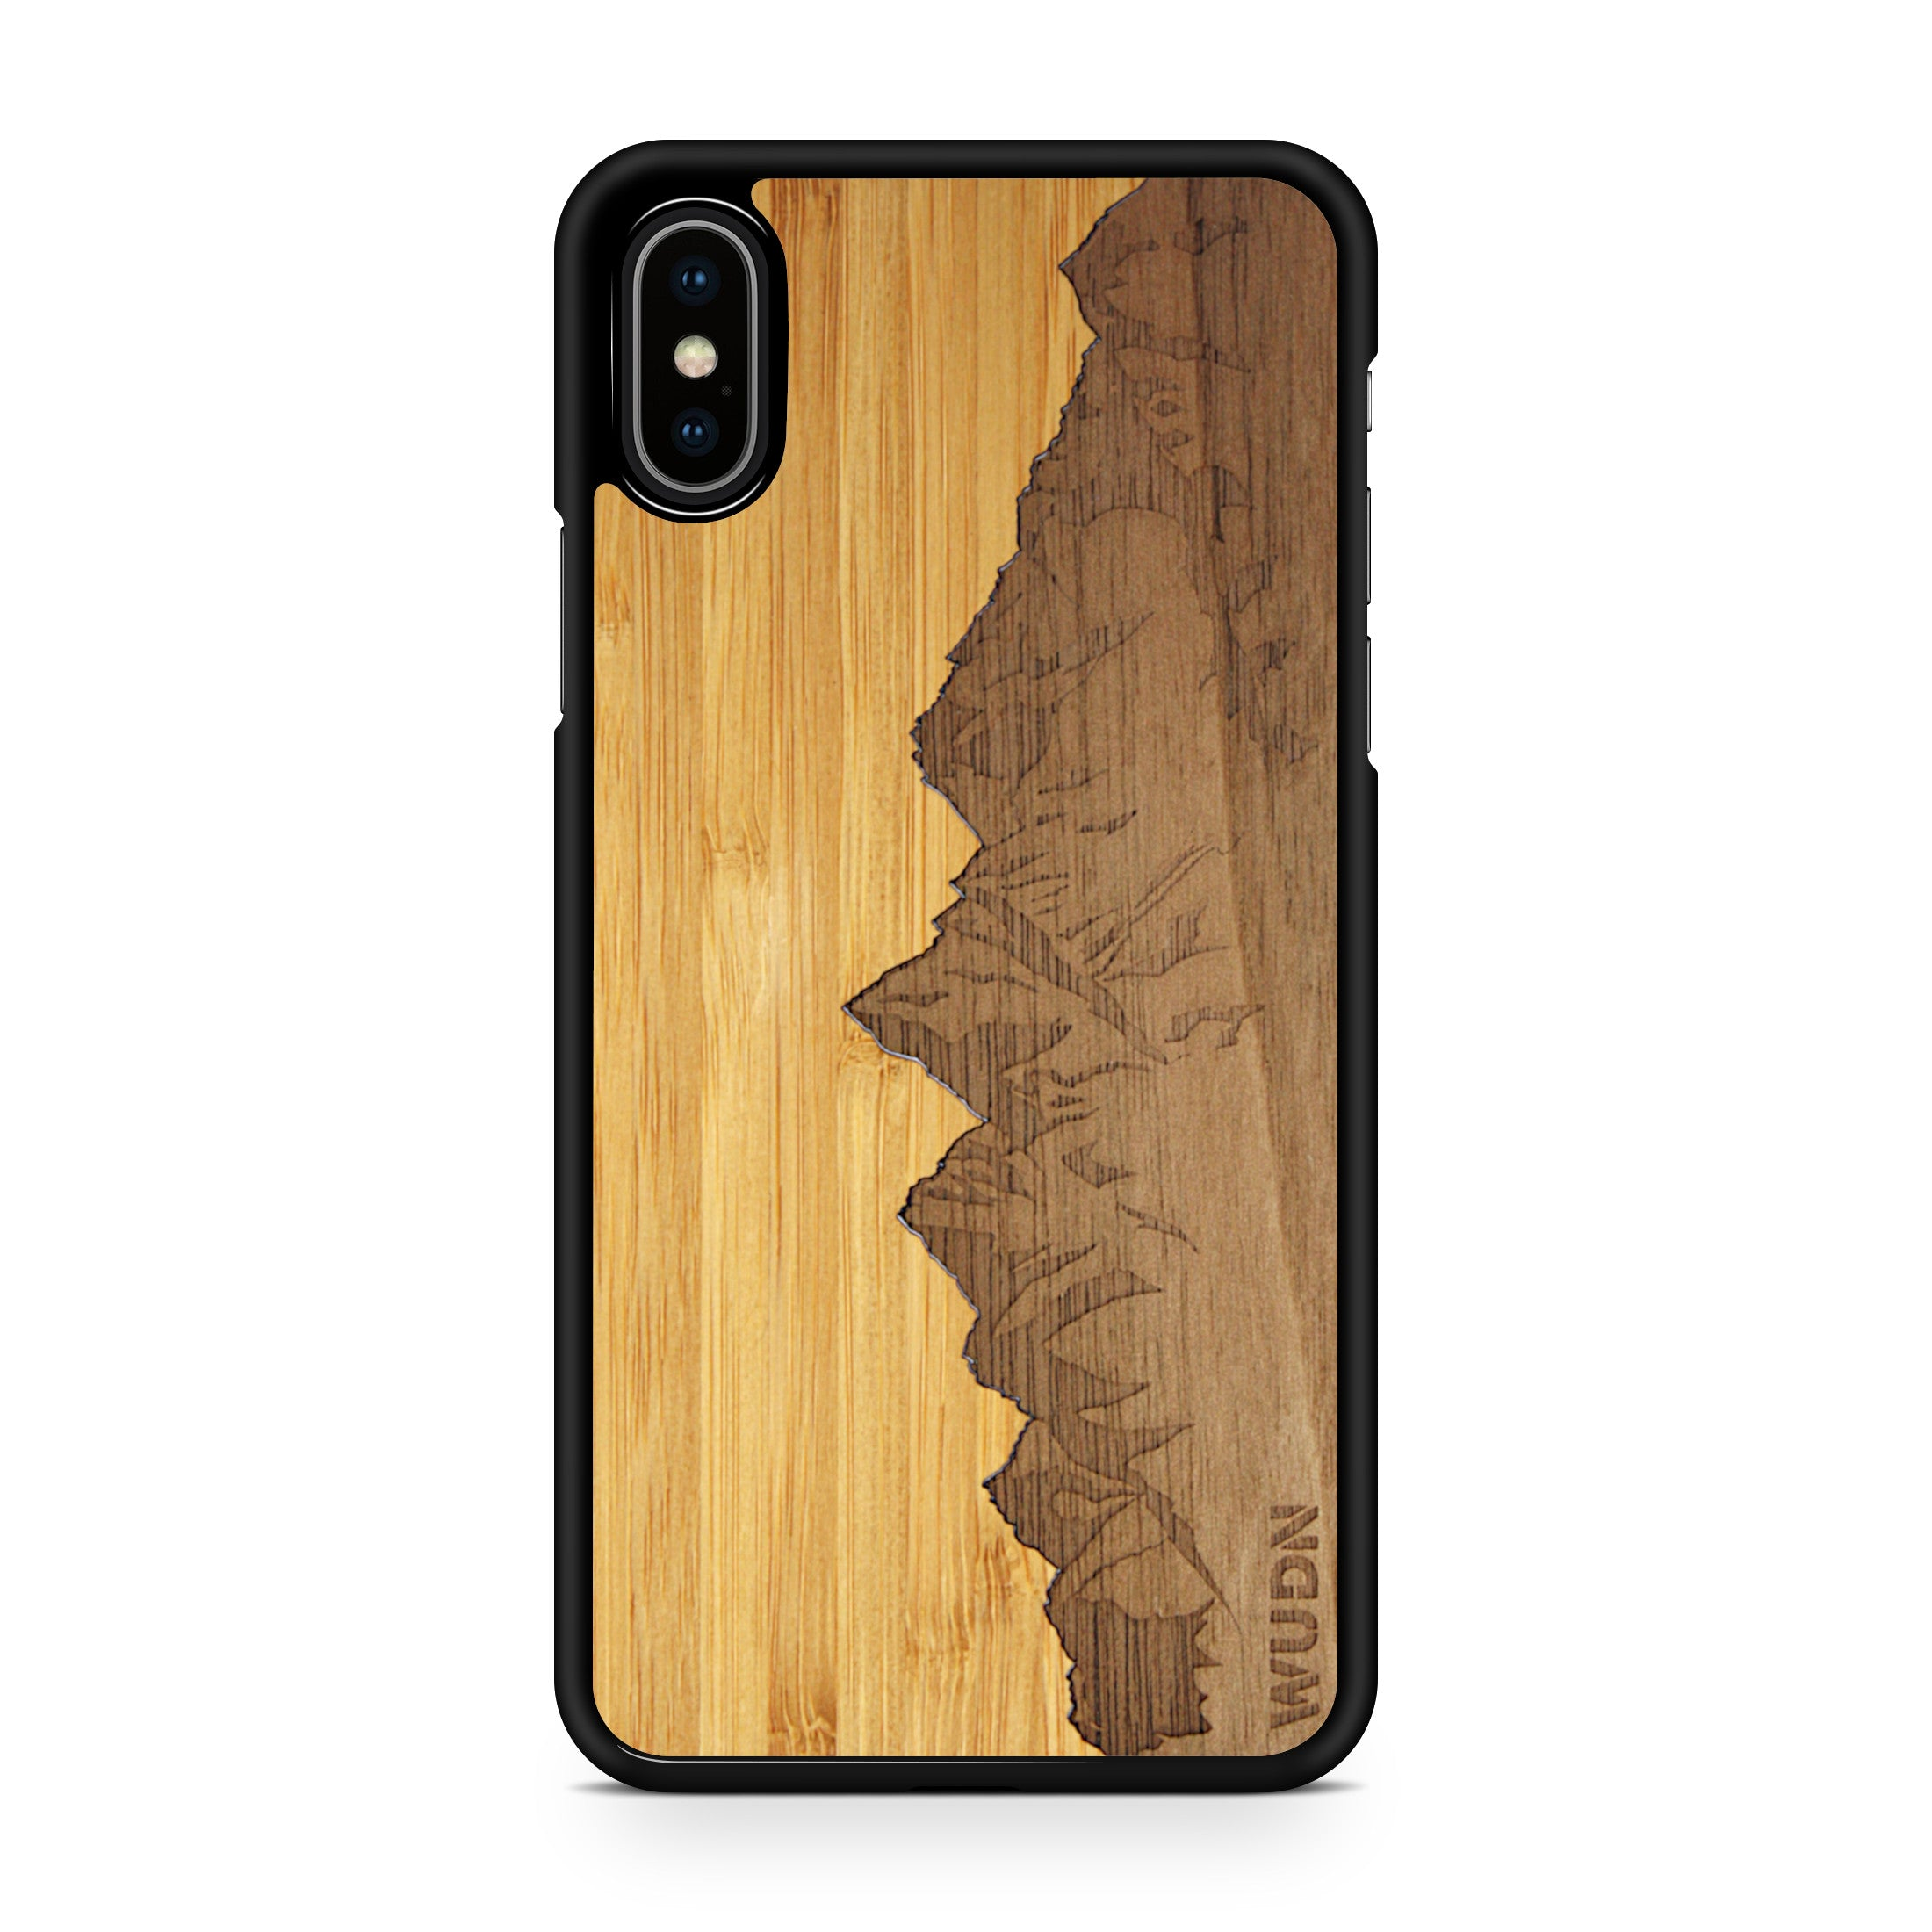 Slim Wooden Phone Case | Sawtooth Mountains Traveler, Cases by WUDN for iPhone Xs Max